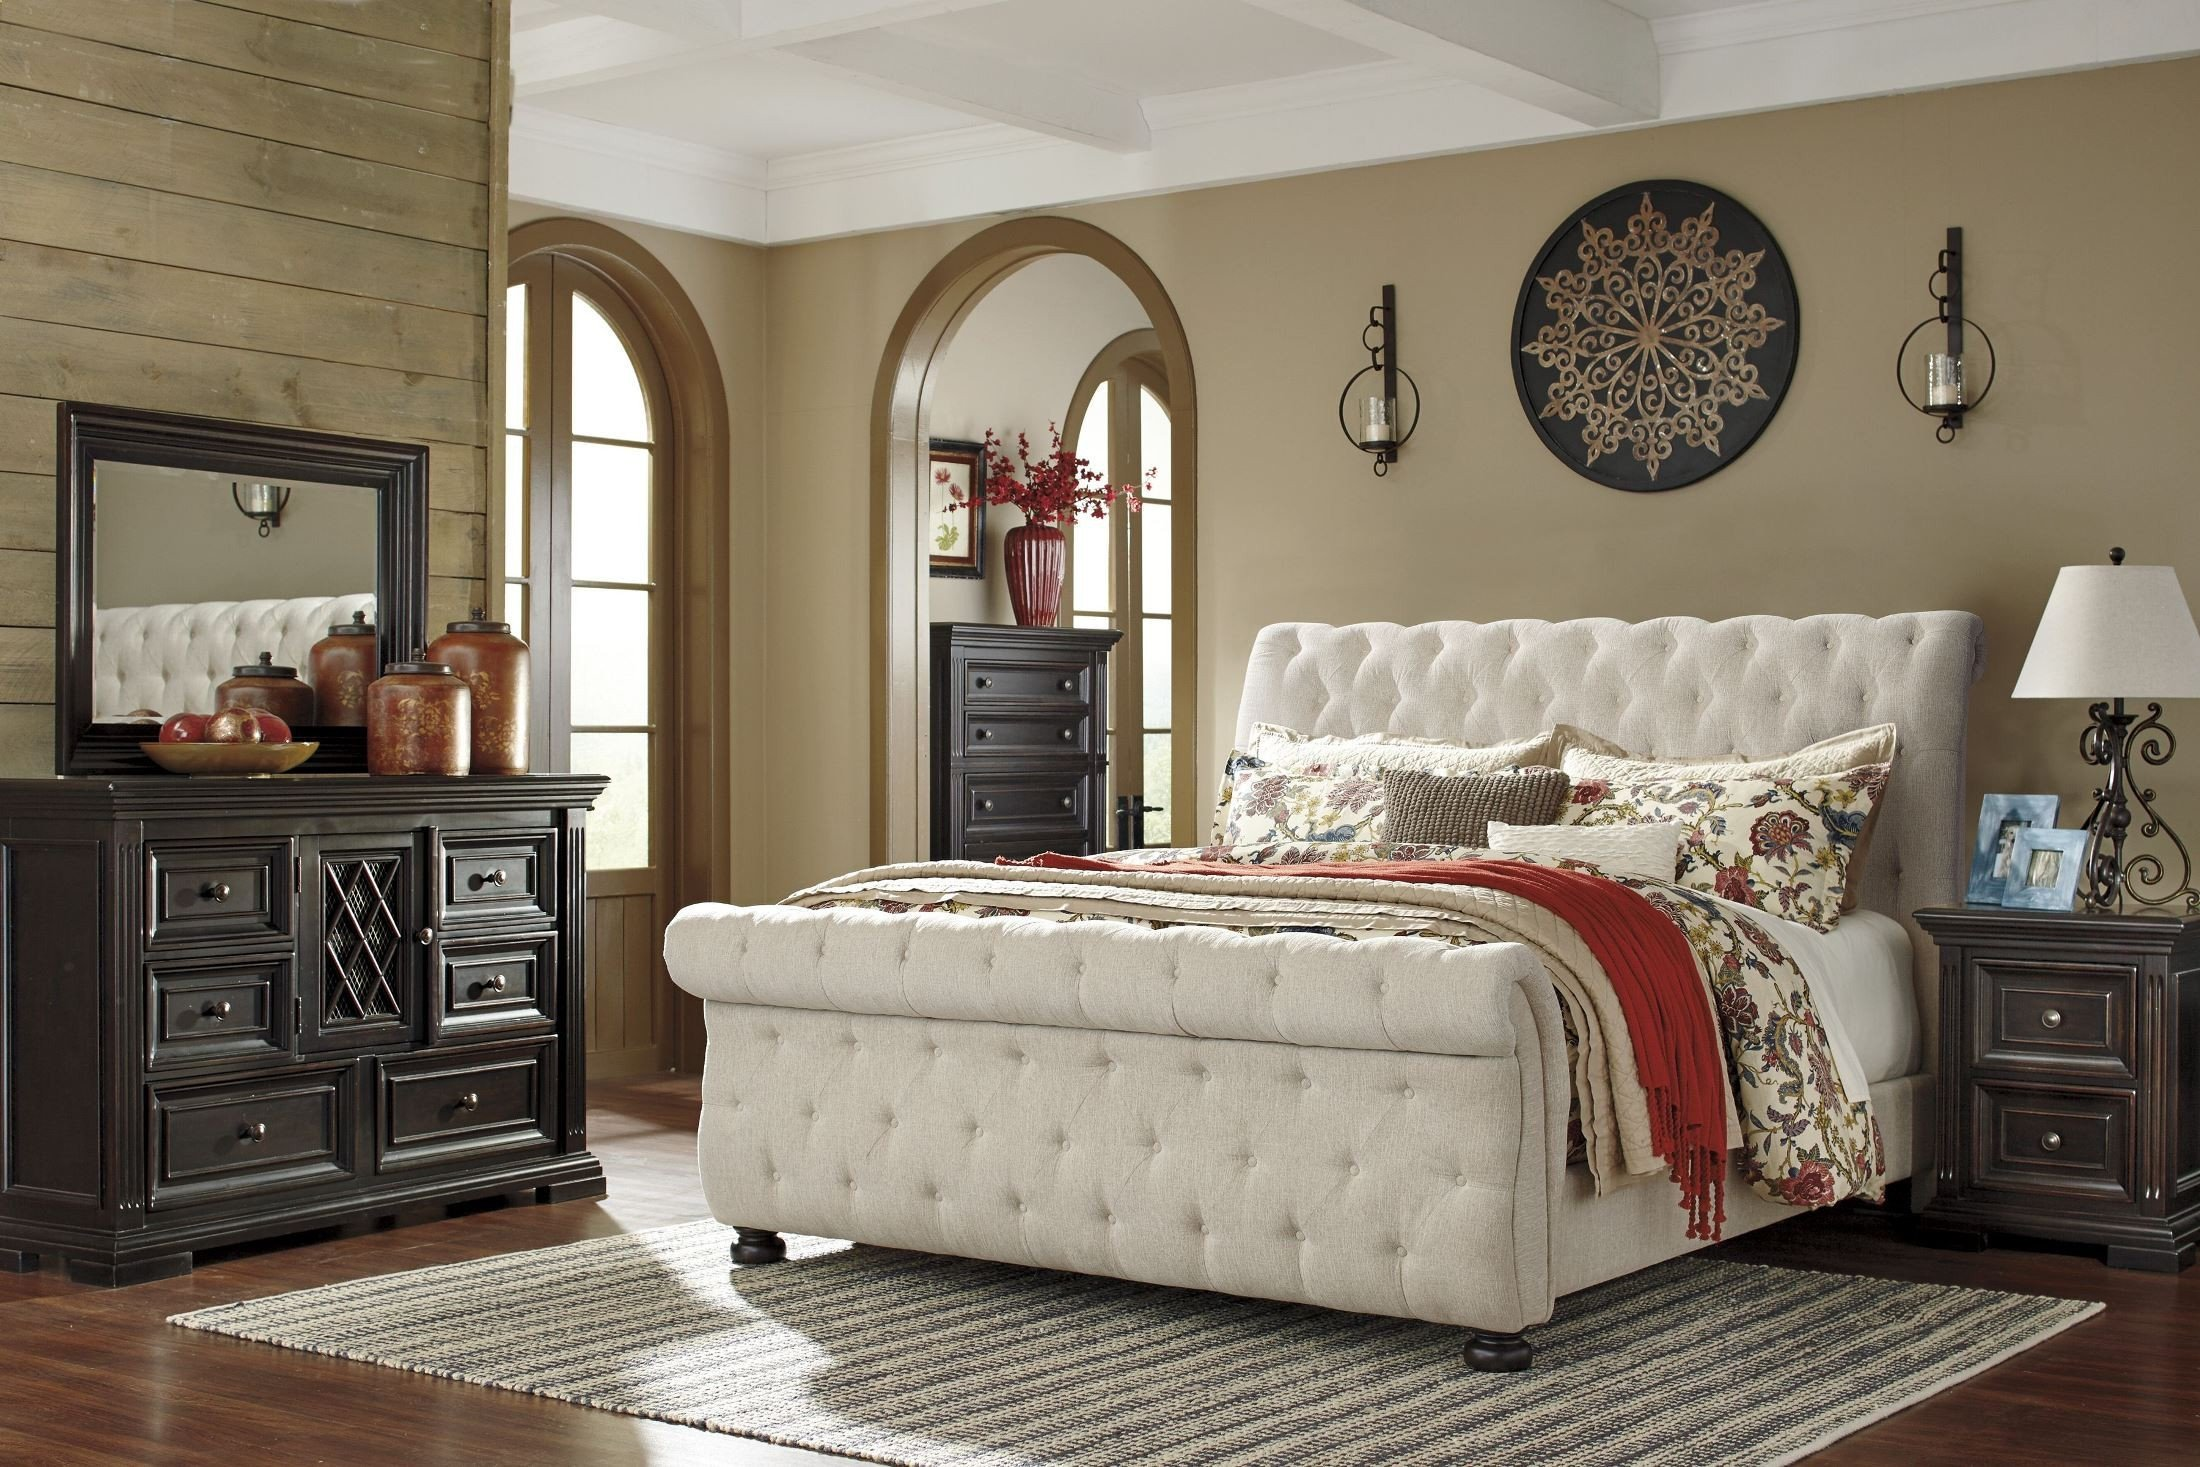 Ashley Furniture Queen Size Bedroom Set Fresh Bedroom Royal Queen Sleigh Bed Frame with Elegant Creative